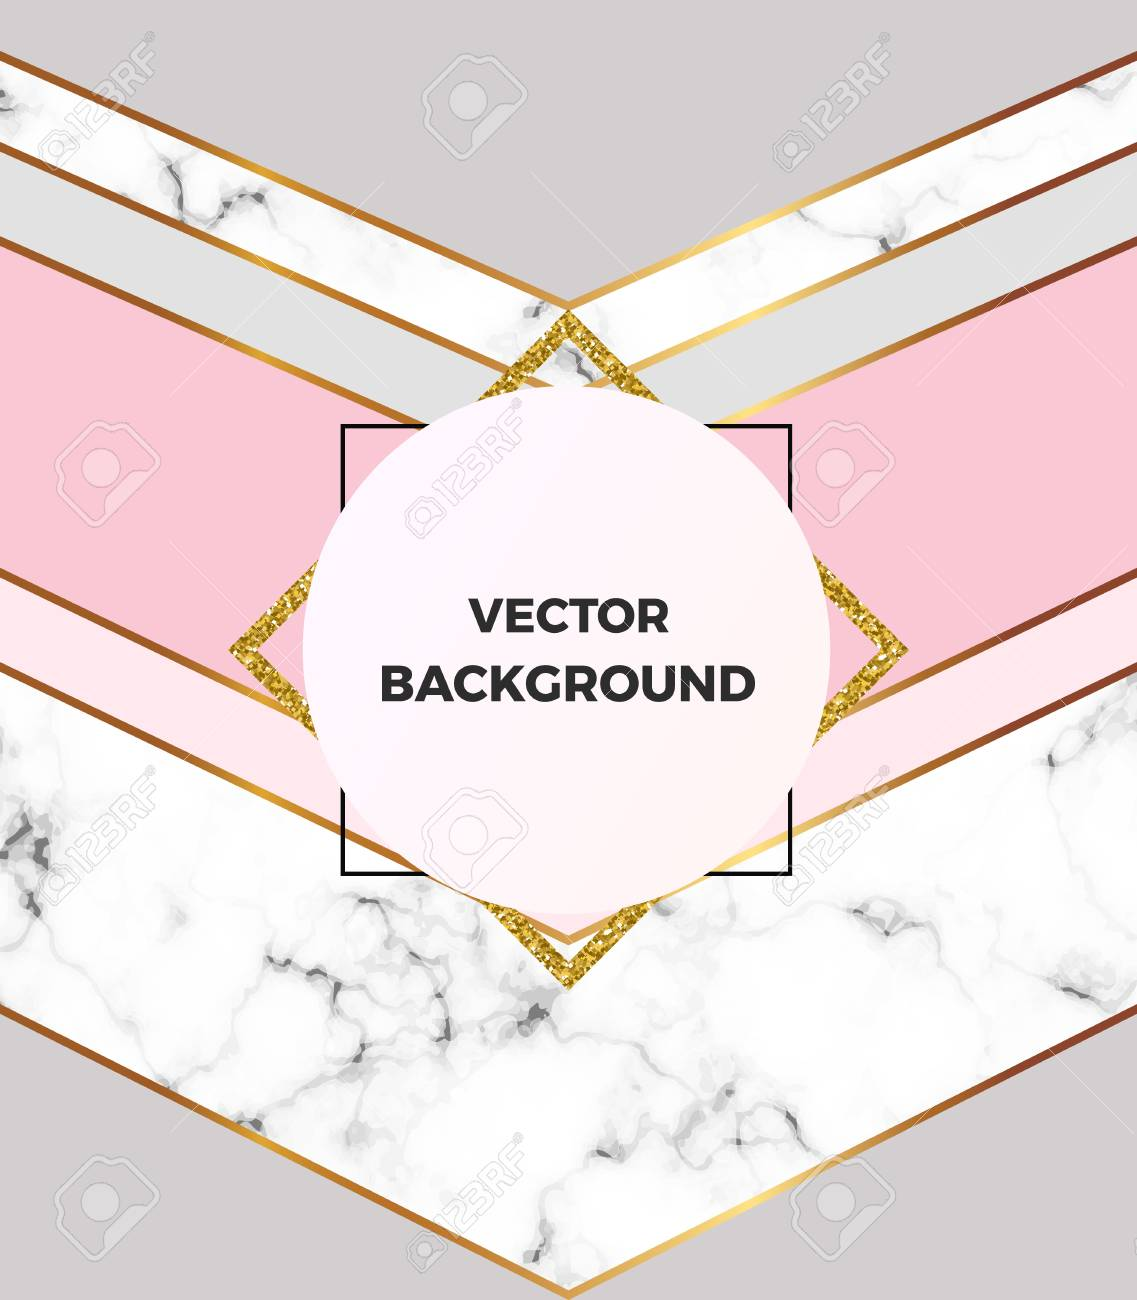 Geometric Design Poster With Gold Cream Gray Pastel Pink And Royalty Free Cliparts Vectors And Stock Illustration Image 99753517